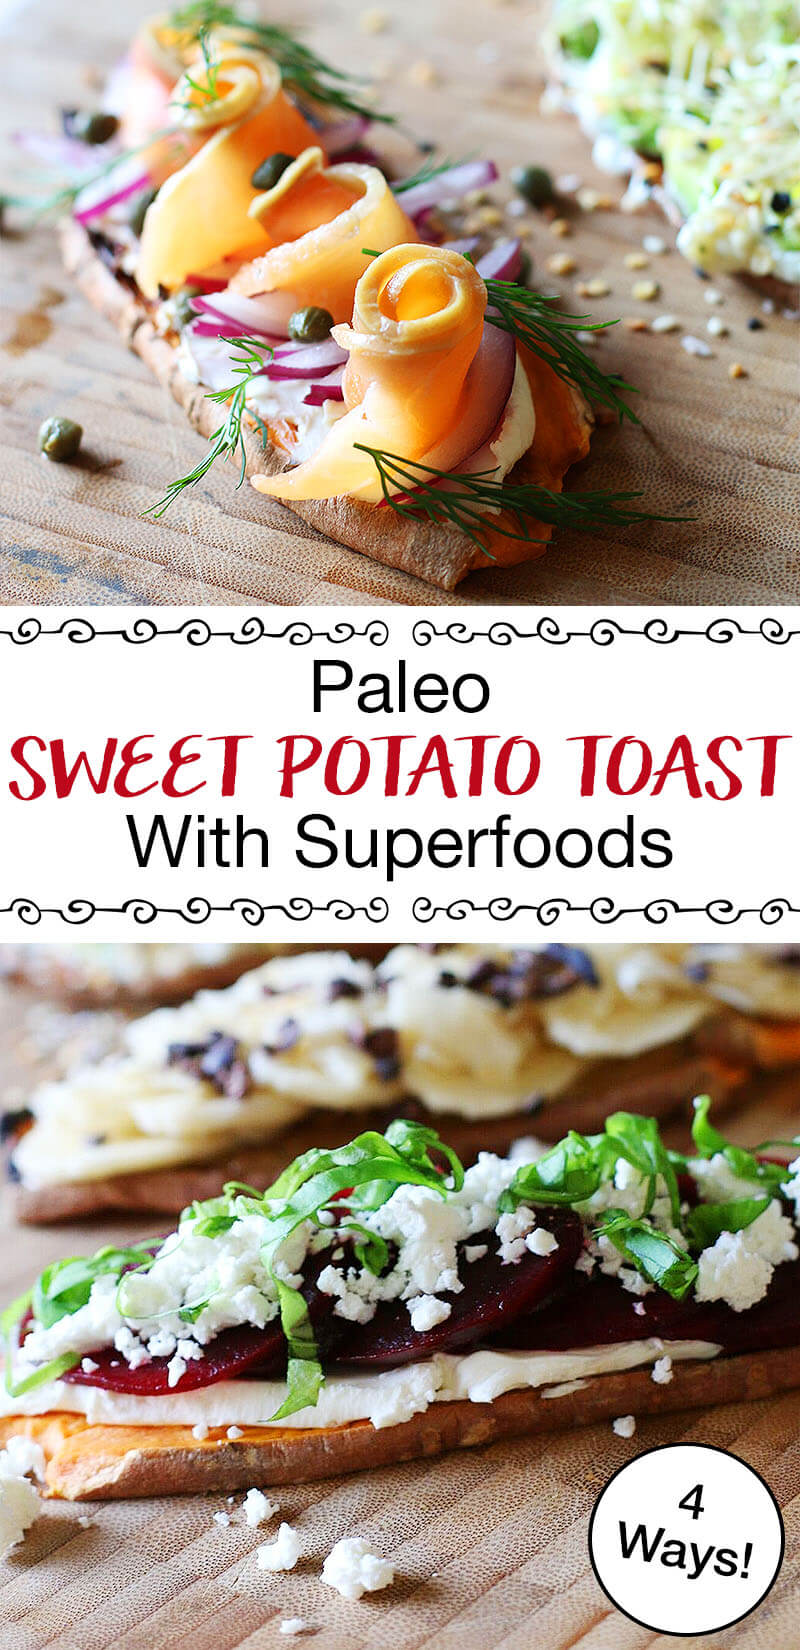 "sweet potato toast in a variety of ways with different toppings, including smoked salmon, sprouts, cream cheese, avocado and more with text overlay: ""Paleo Sweet Potato Toast With Superfoods"""